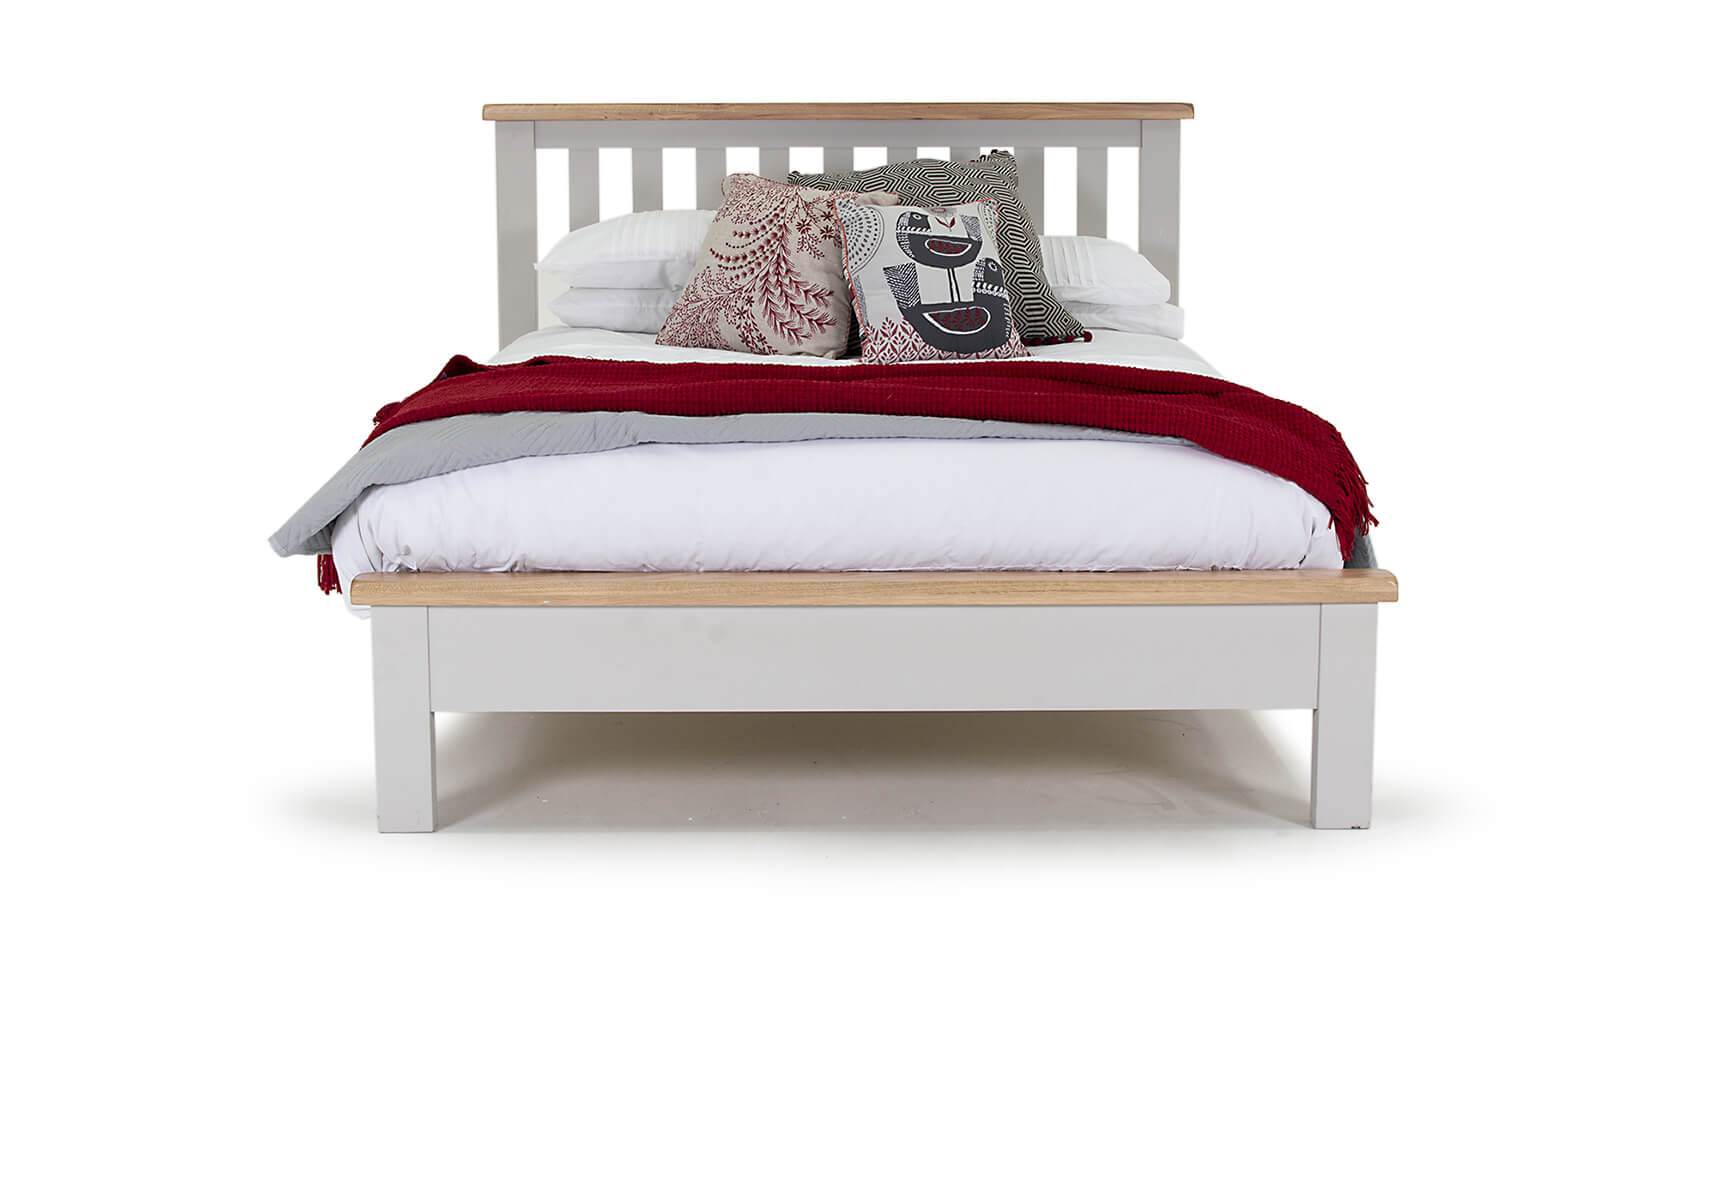 4ft Double Bed Size Beds Bed Frames Bedroom